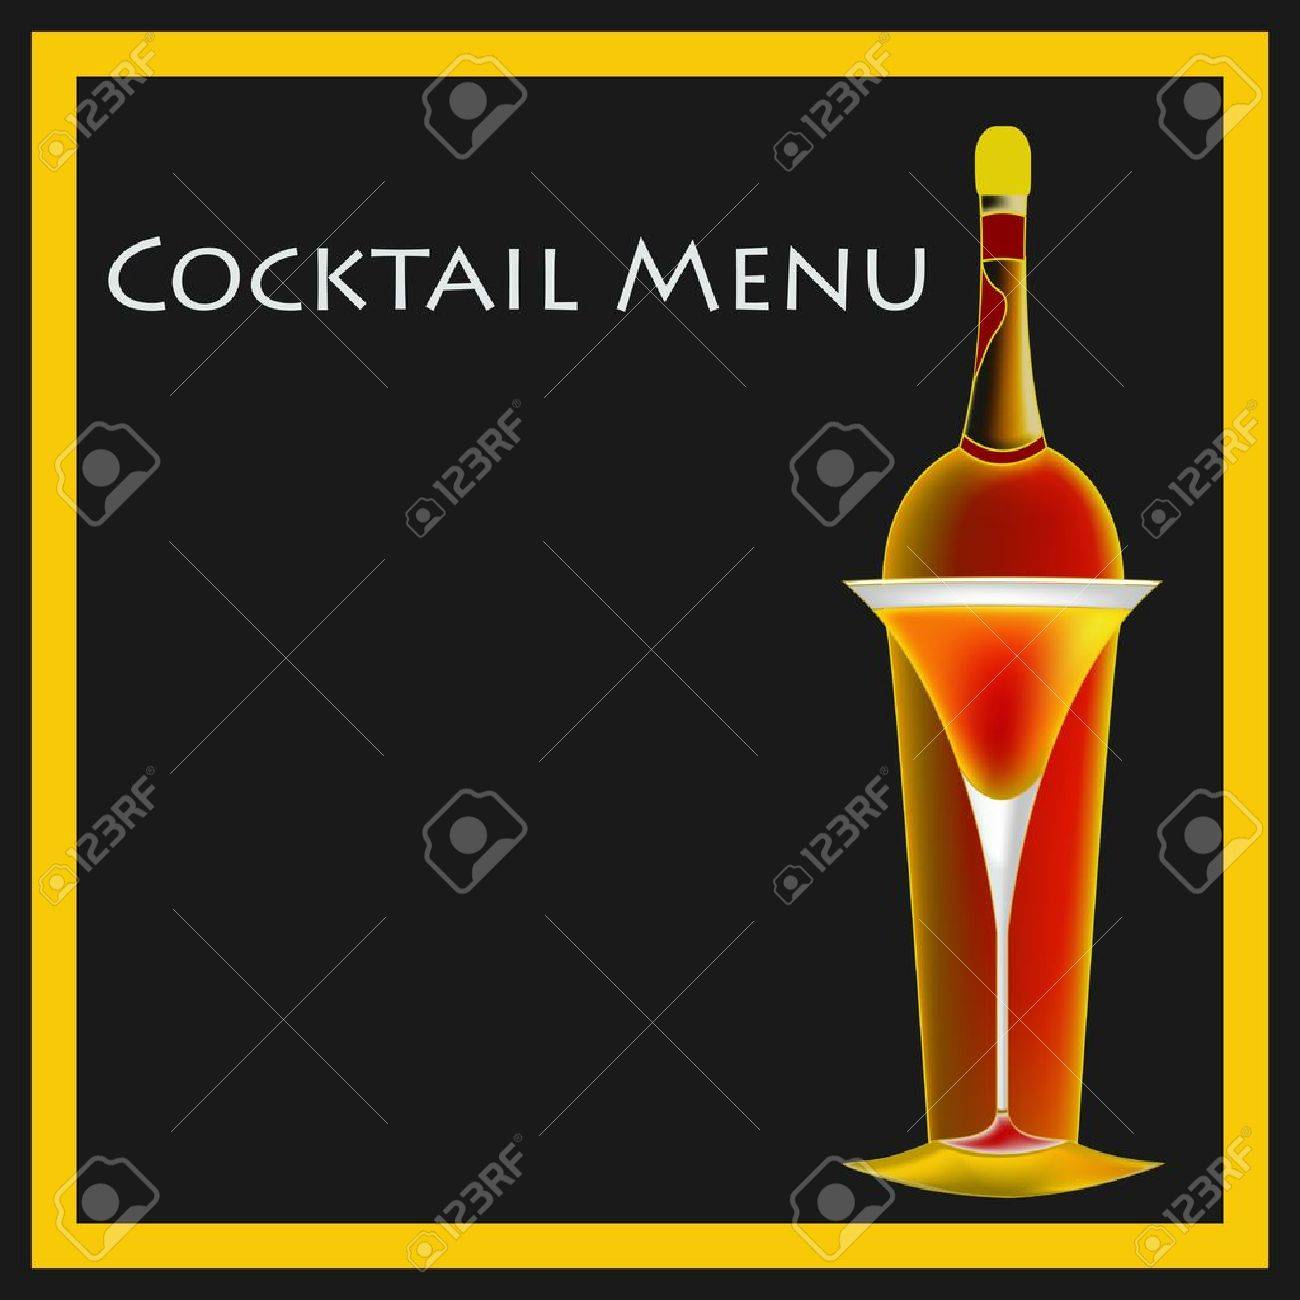 A Vintage Deco Style Cocktail Bar Menu Template Illustration Stock Vector -  13093832